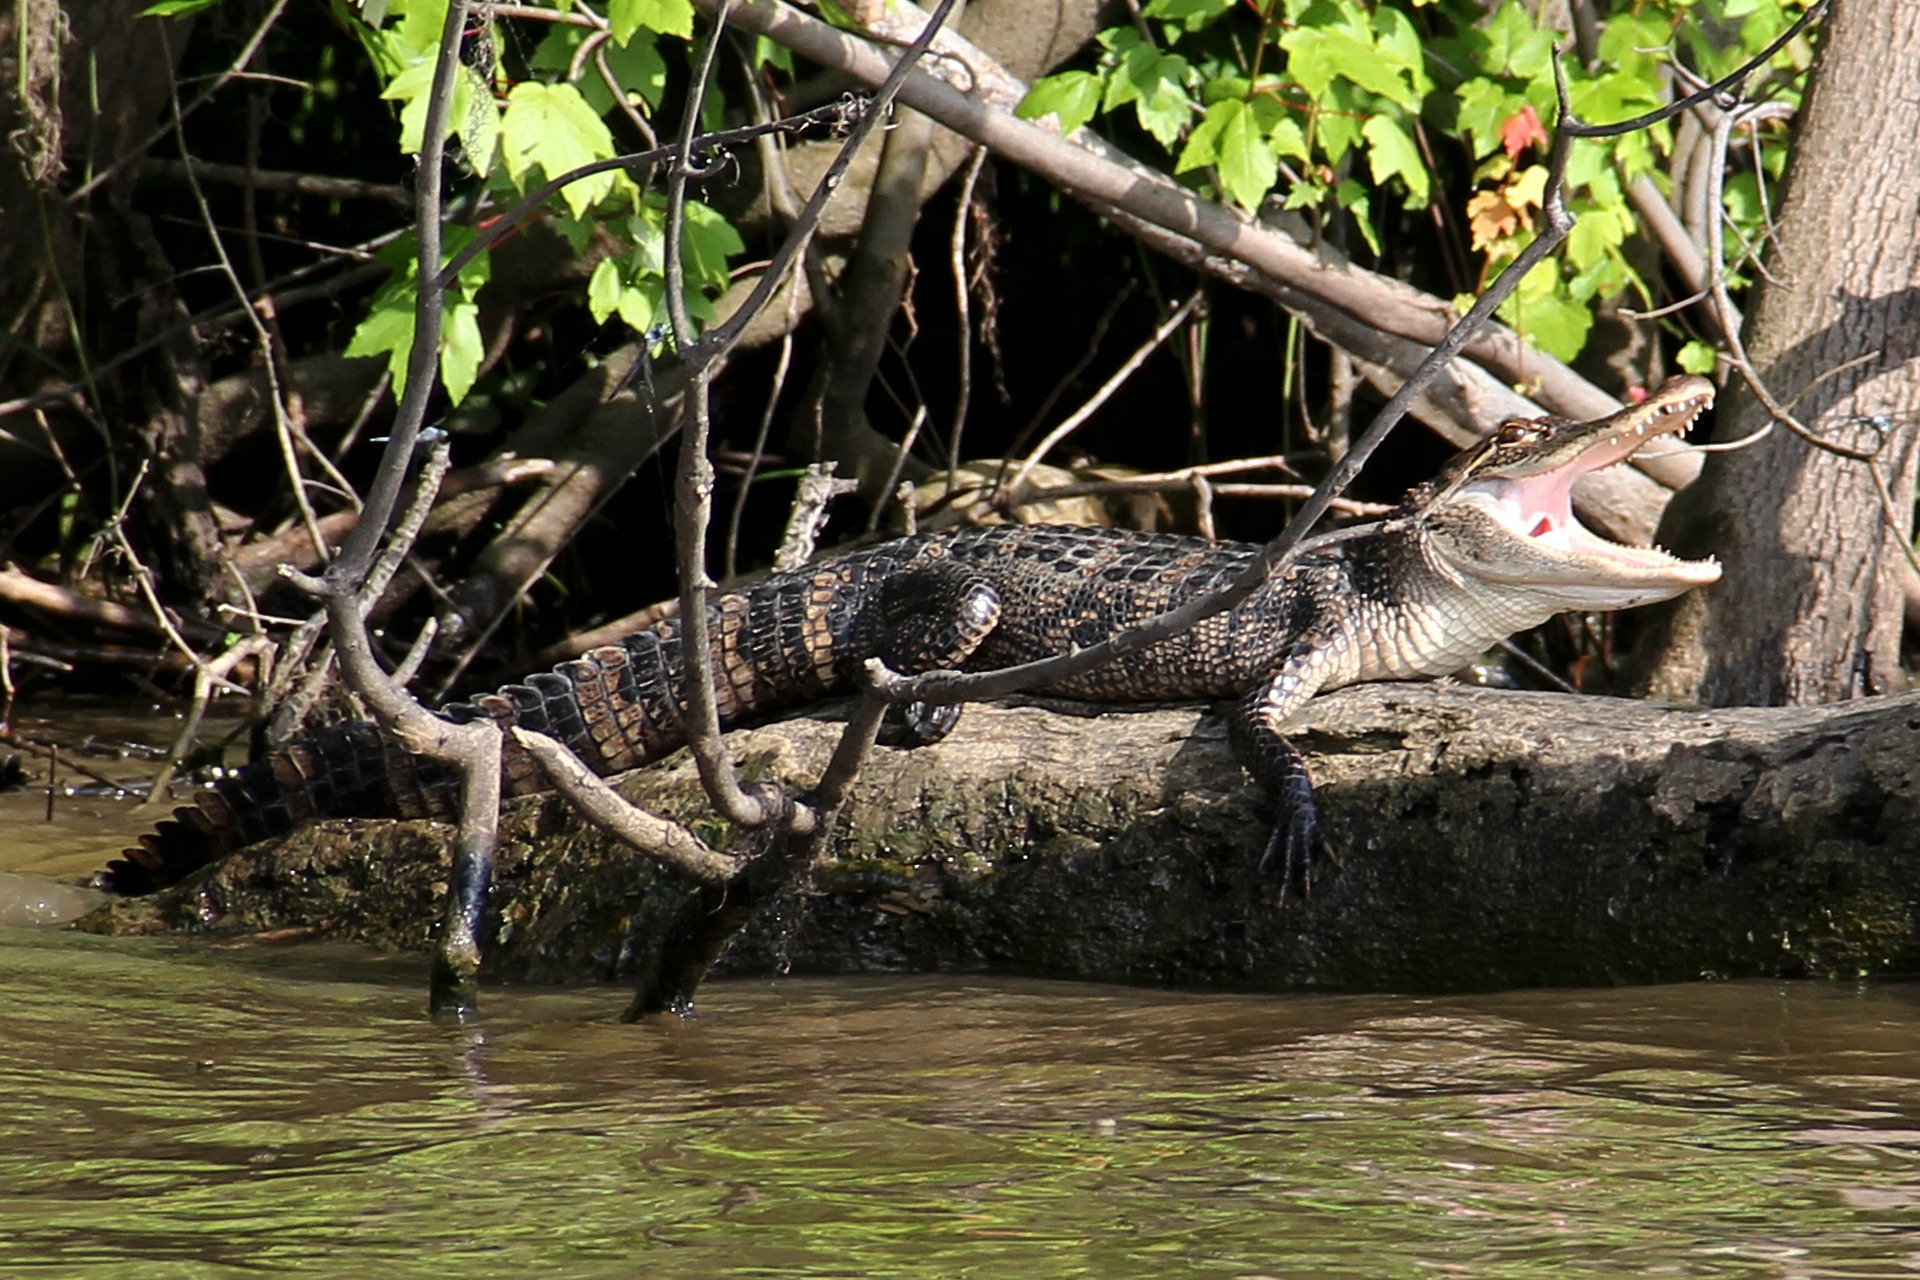 Alligator in den Sümpfen von Luisiana, Foto: pixabay.com (Pixabay License)